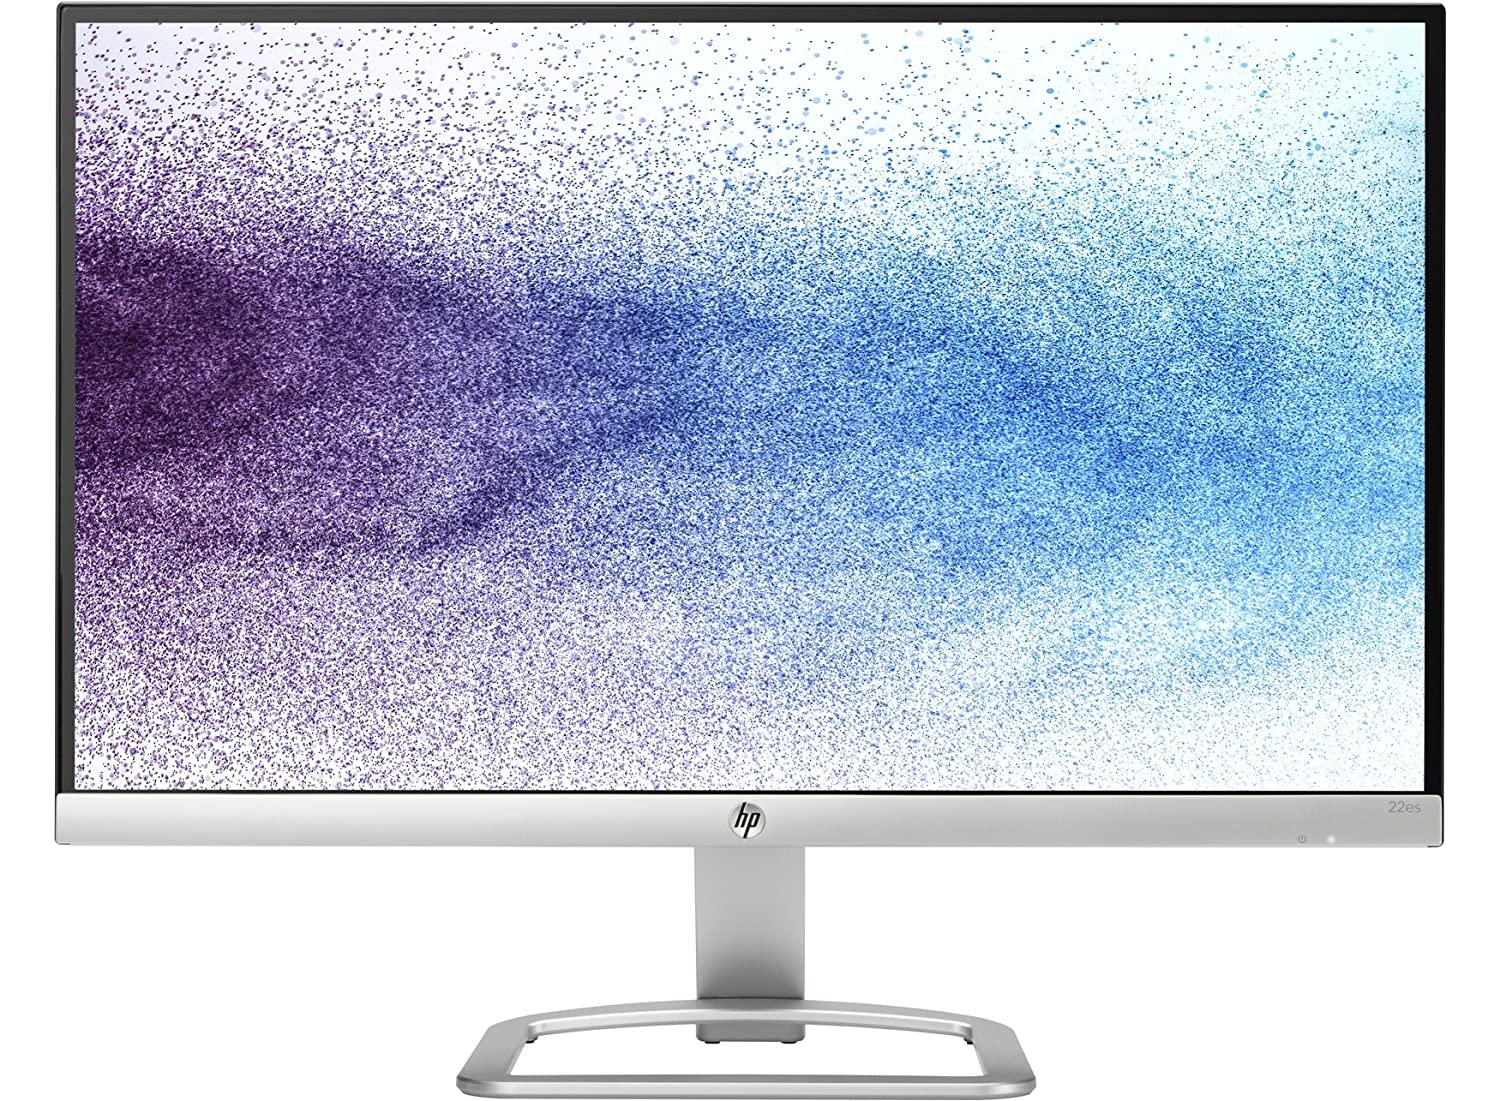 HP 22es Display 54.6 cm, 21.5 Inch IPS LED Backlit Monitor